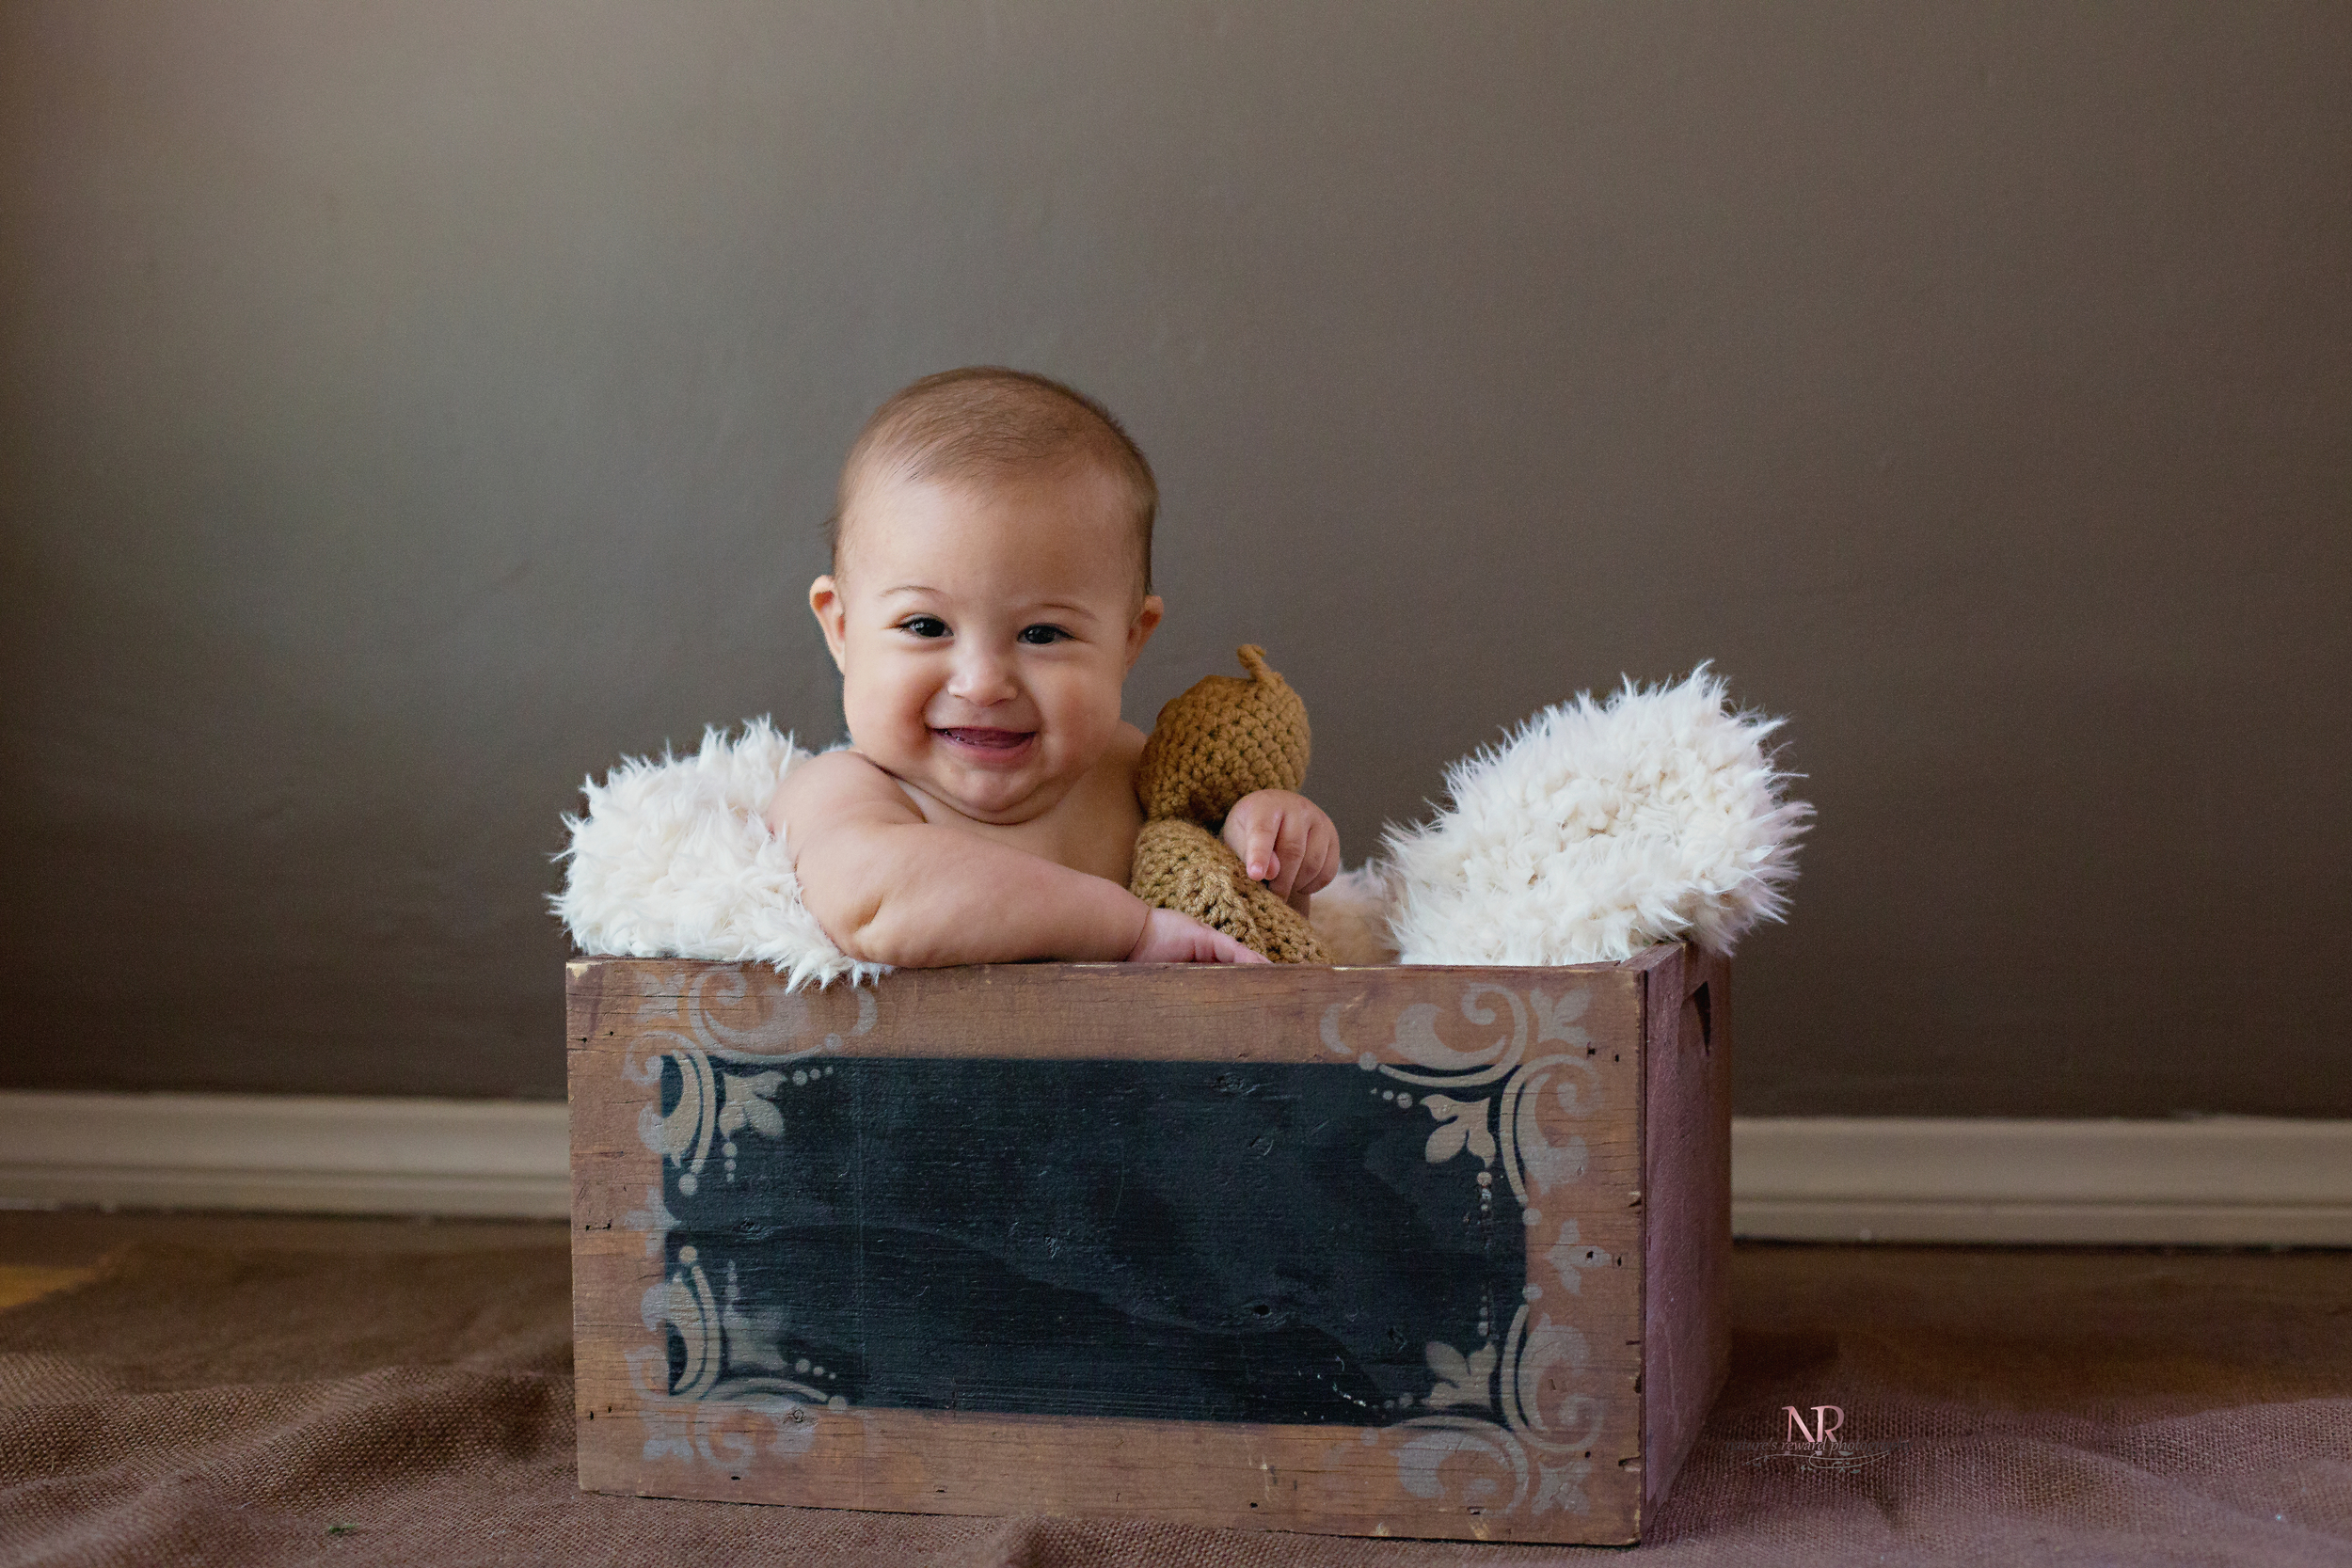 He looks so darling in the box! Baby and boxes- I just love it! Here are some more of that smile!